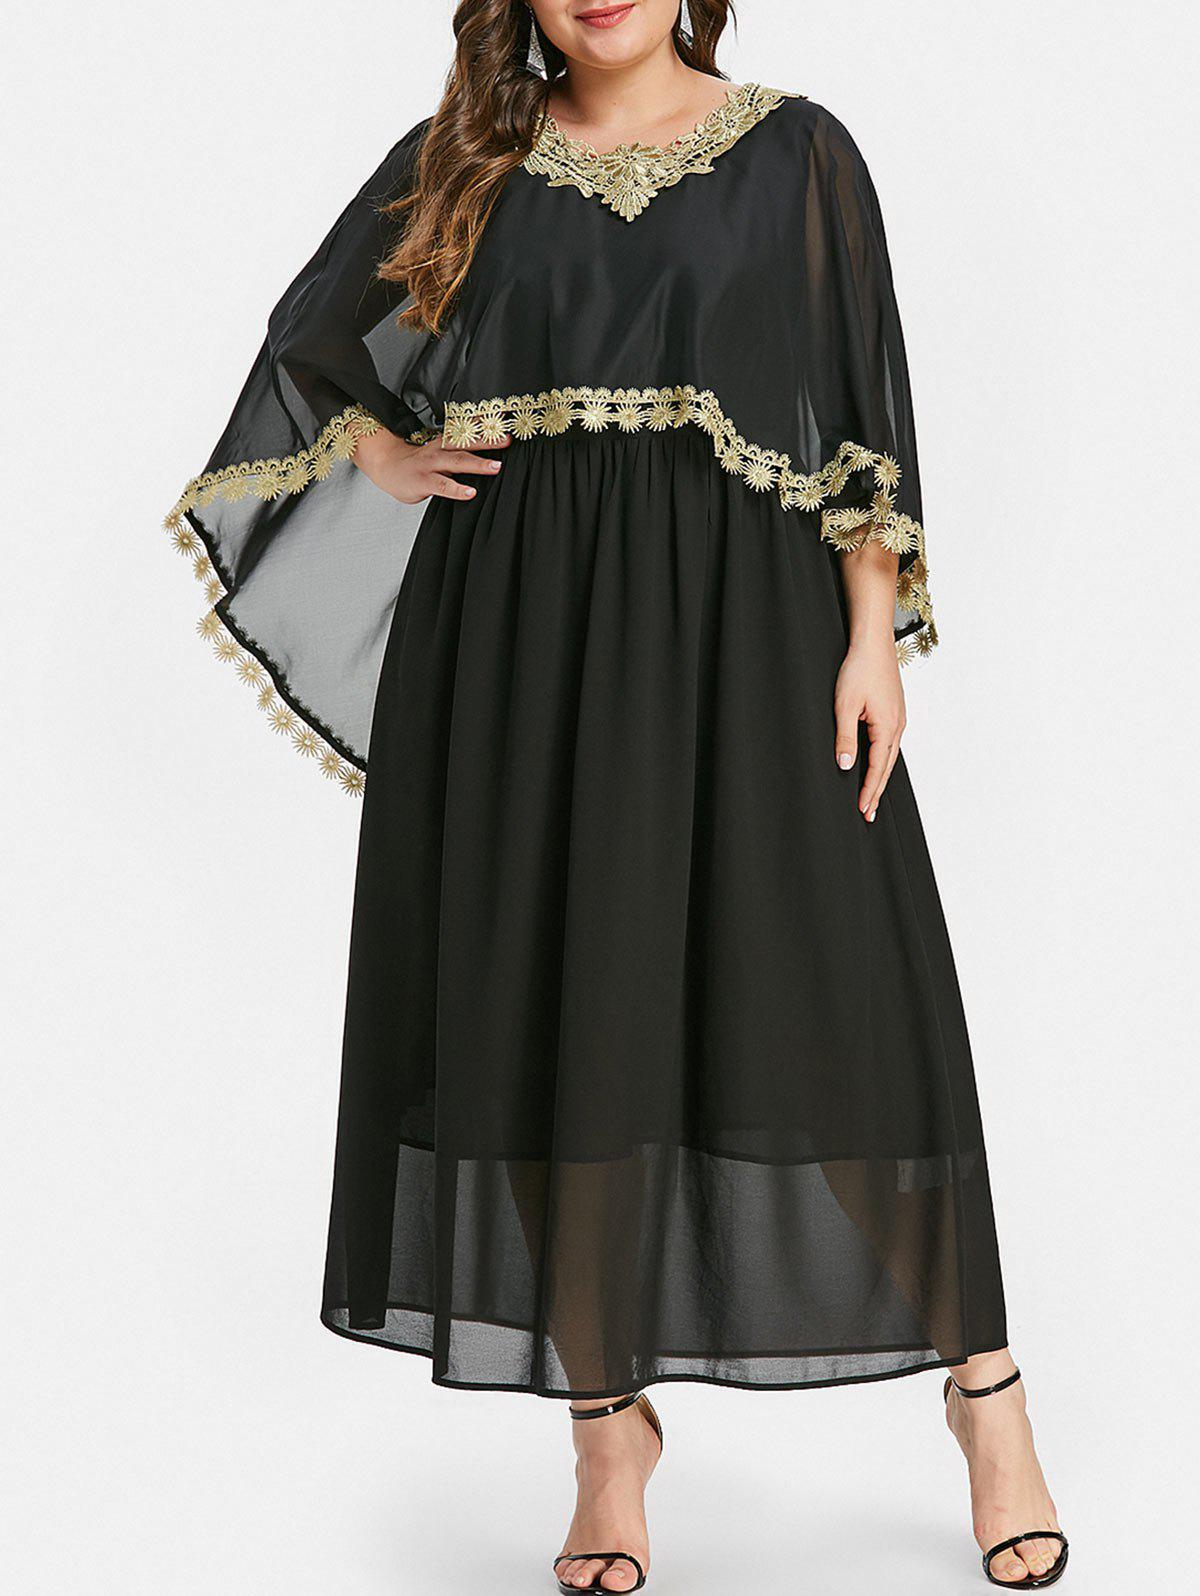 Plus Size Contrast Lace Cape Dress - BLACK 1X